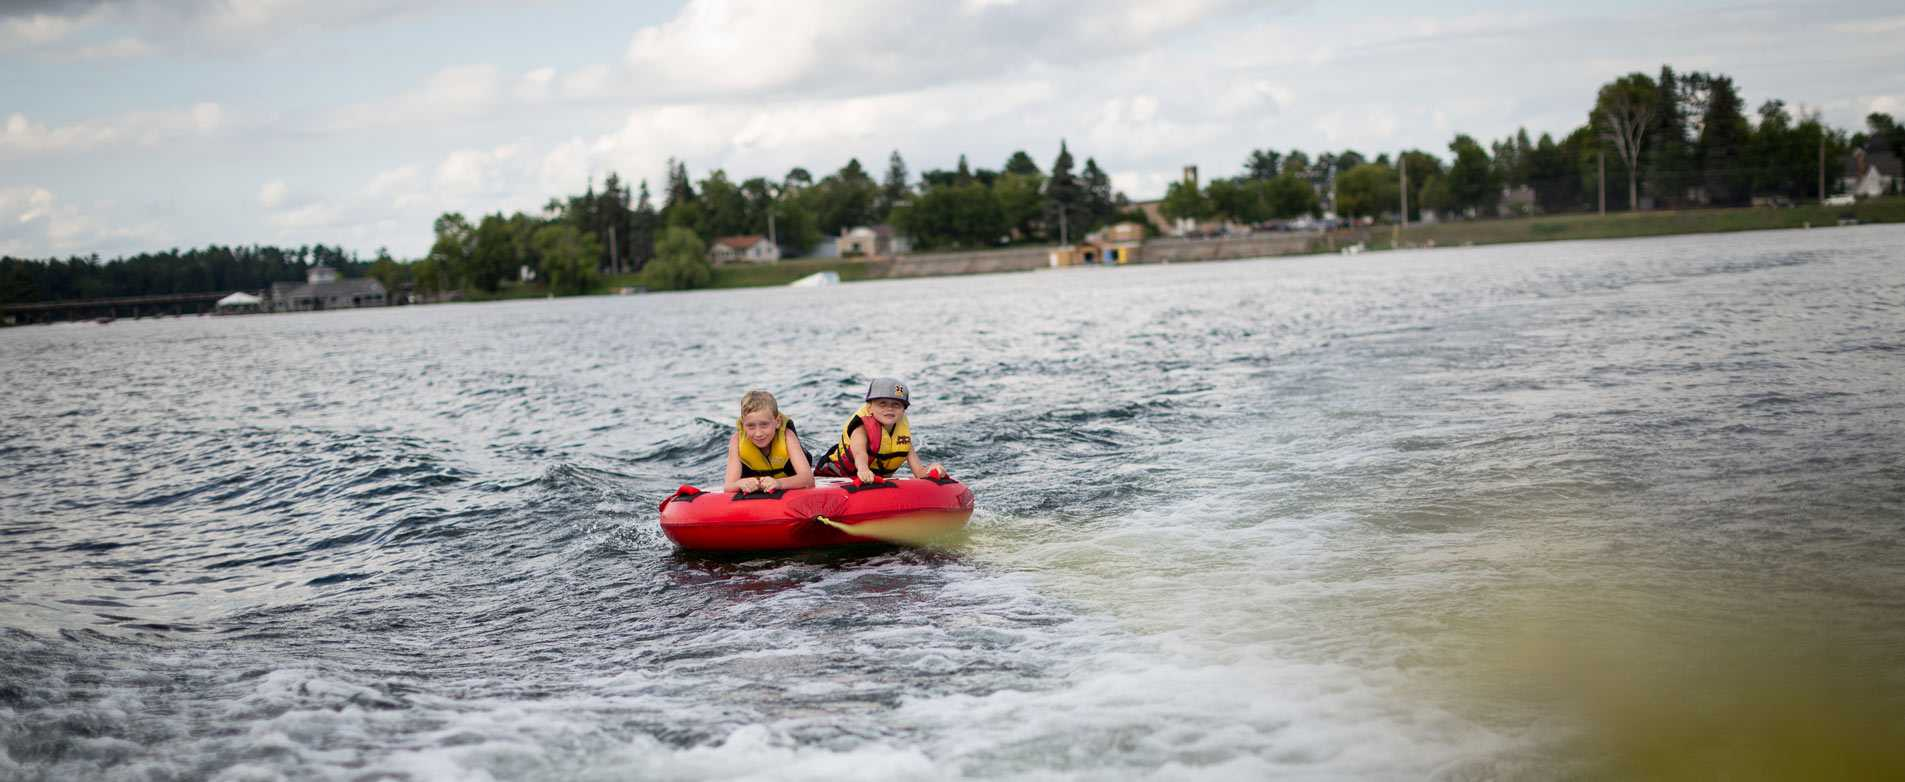 Tubing on Lake Minocqua